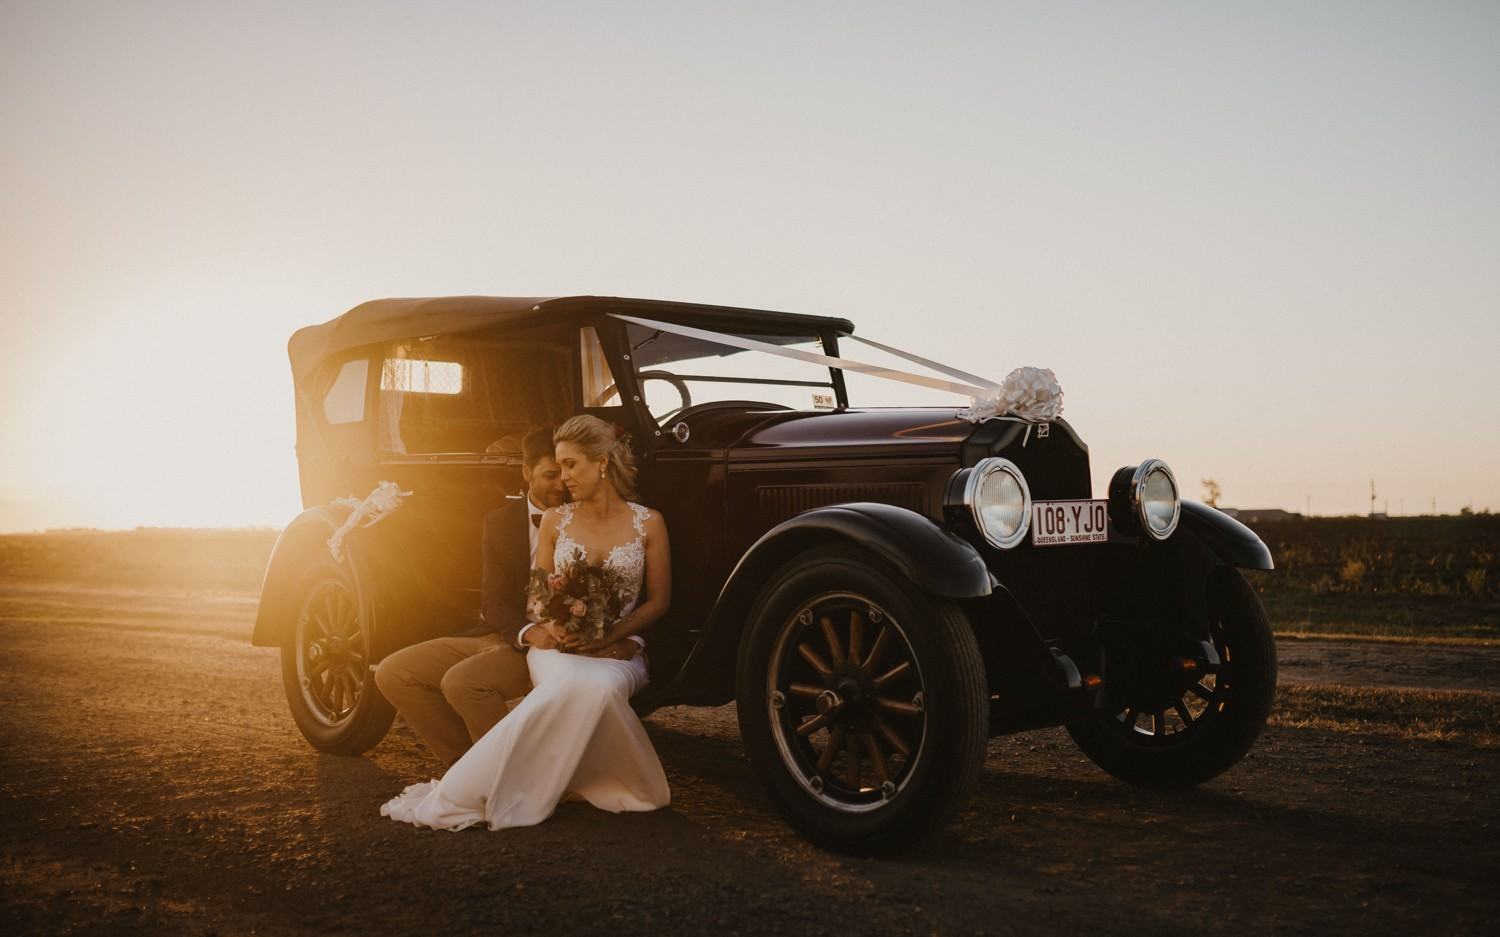 Bride and Groom with vintage car during sunset.